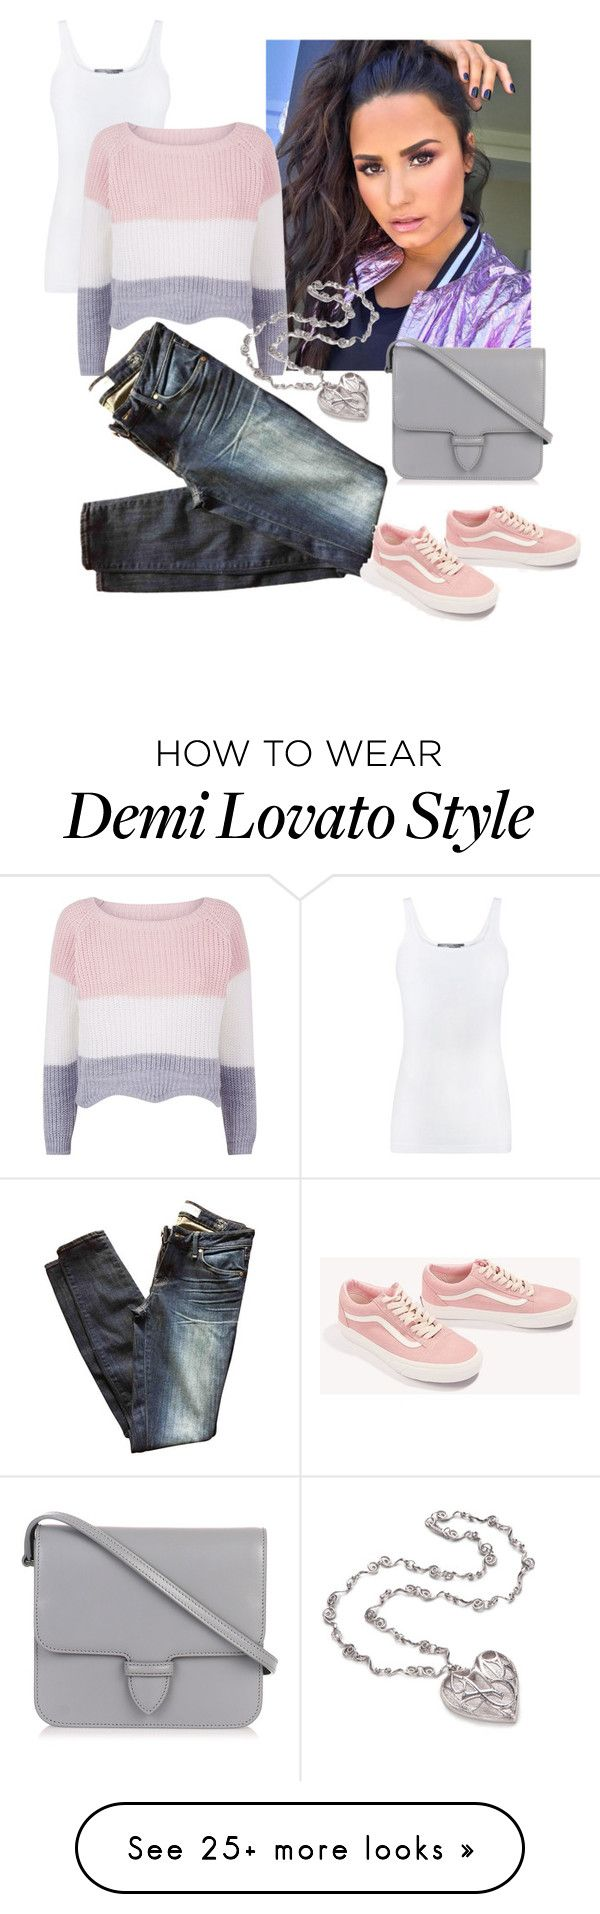 """Untitled #1174"" by tammydevoll on Polyvore featuring Marc by Marc Jacobs, Vince, Vans and Alaïa"